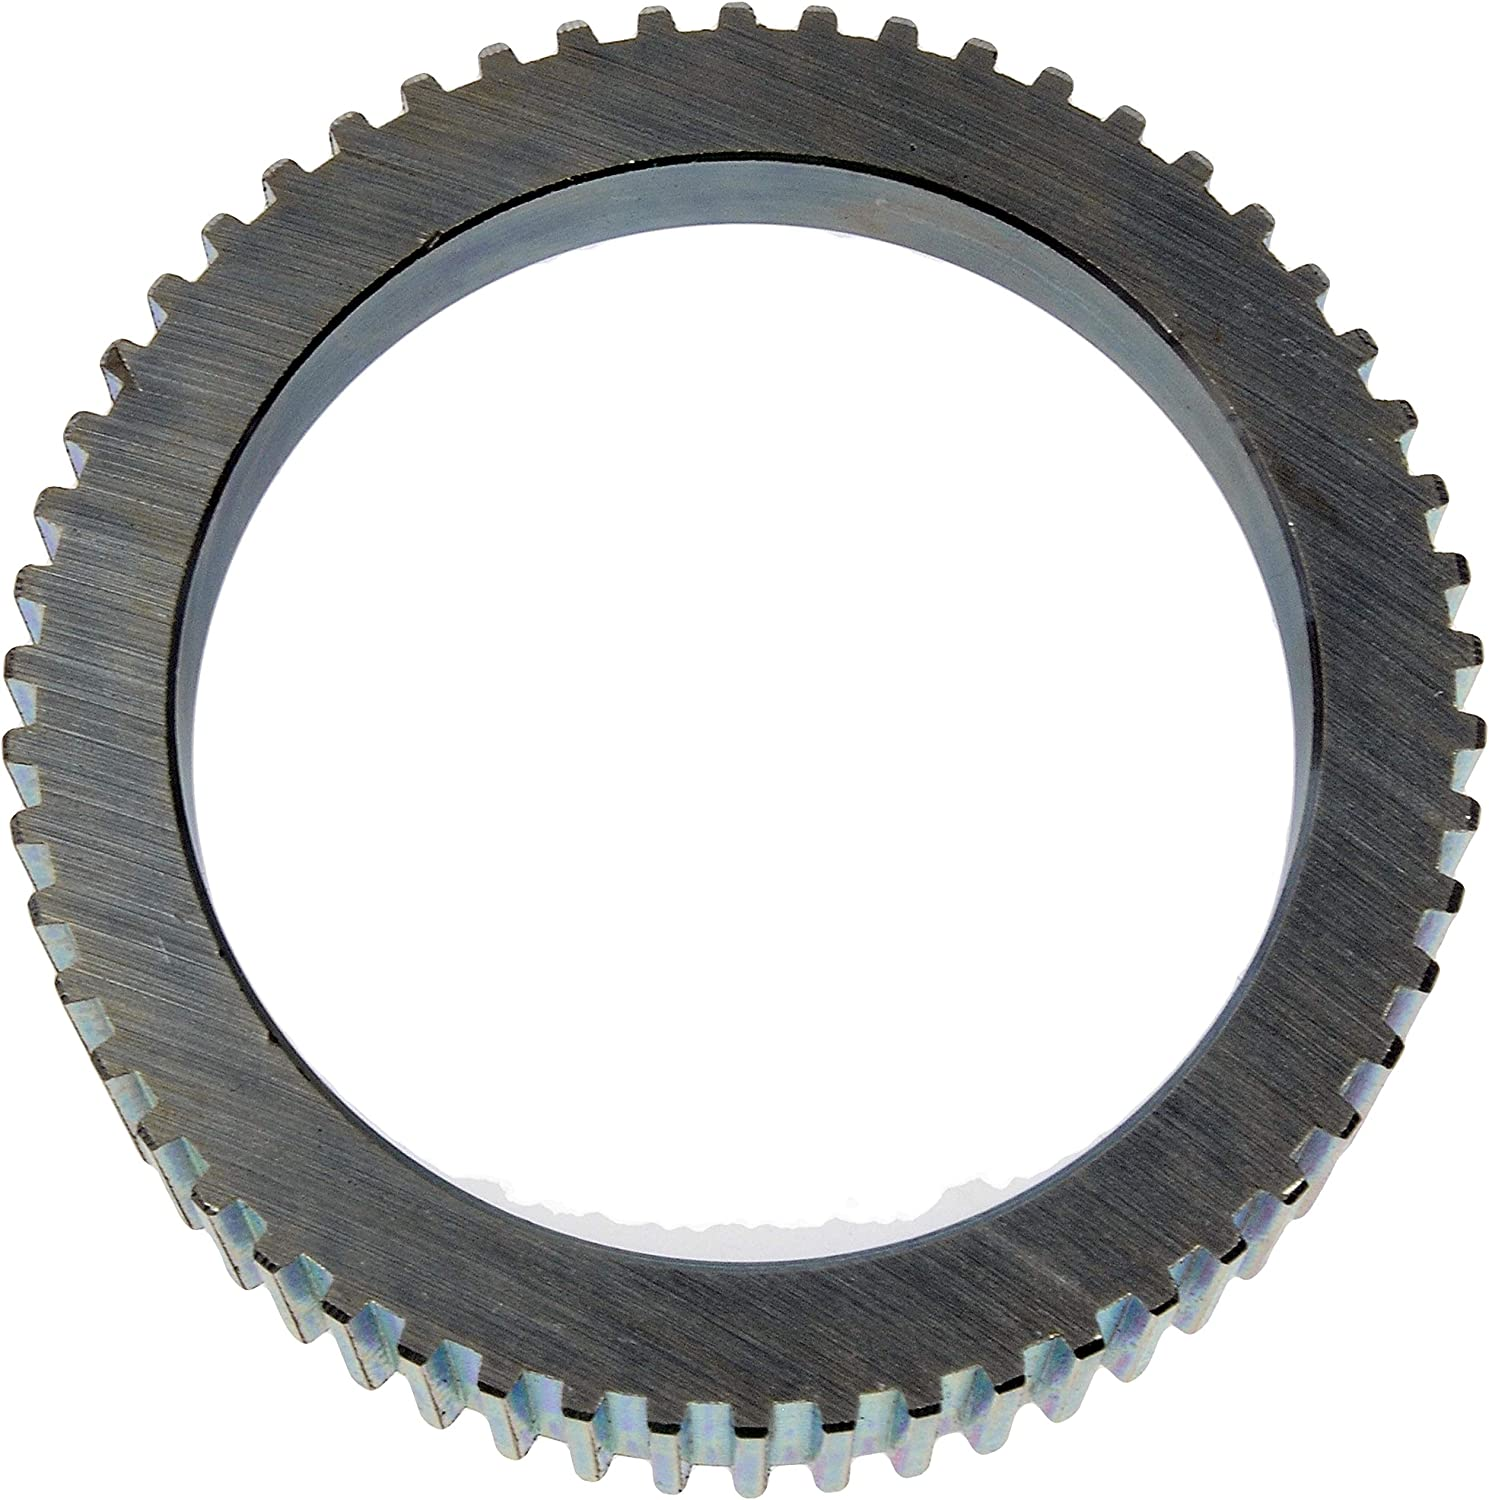 Dorman 917-542 ABS Tone Ring